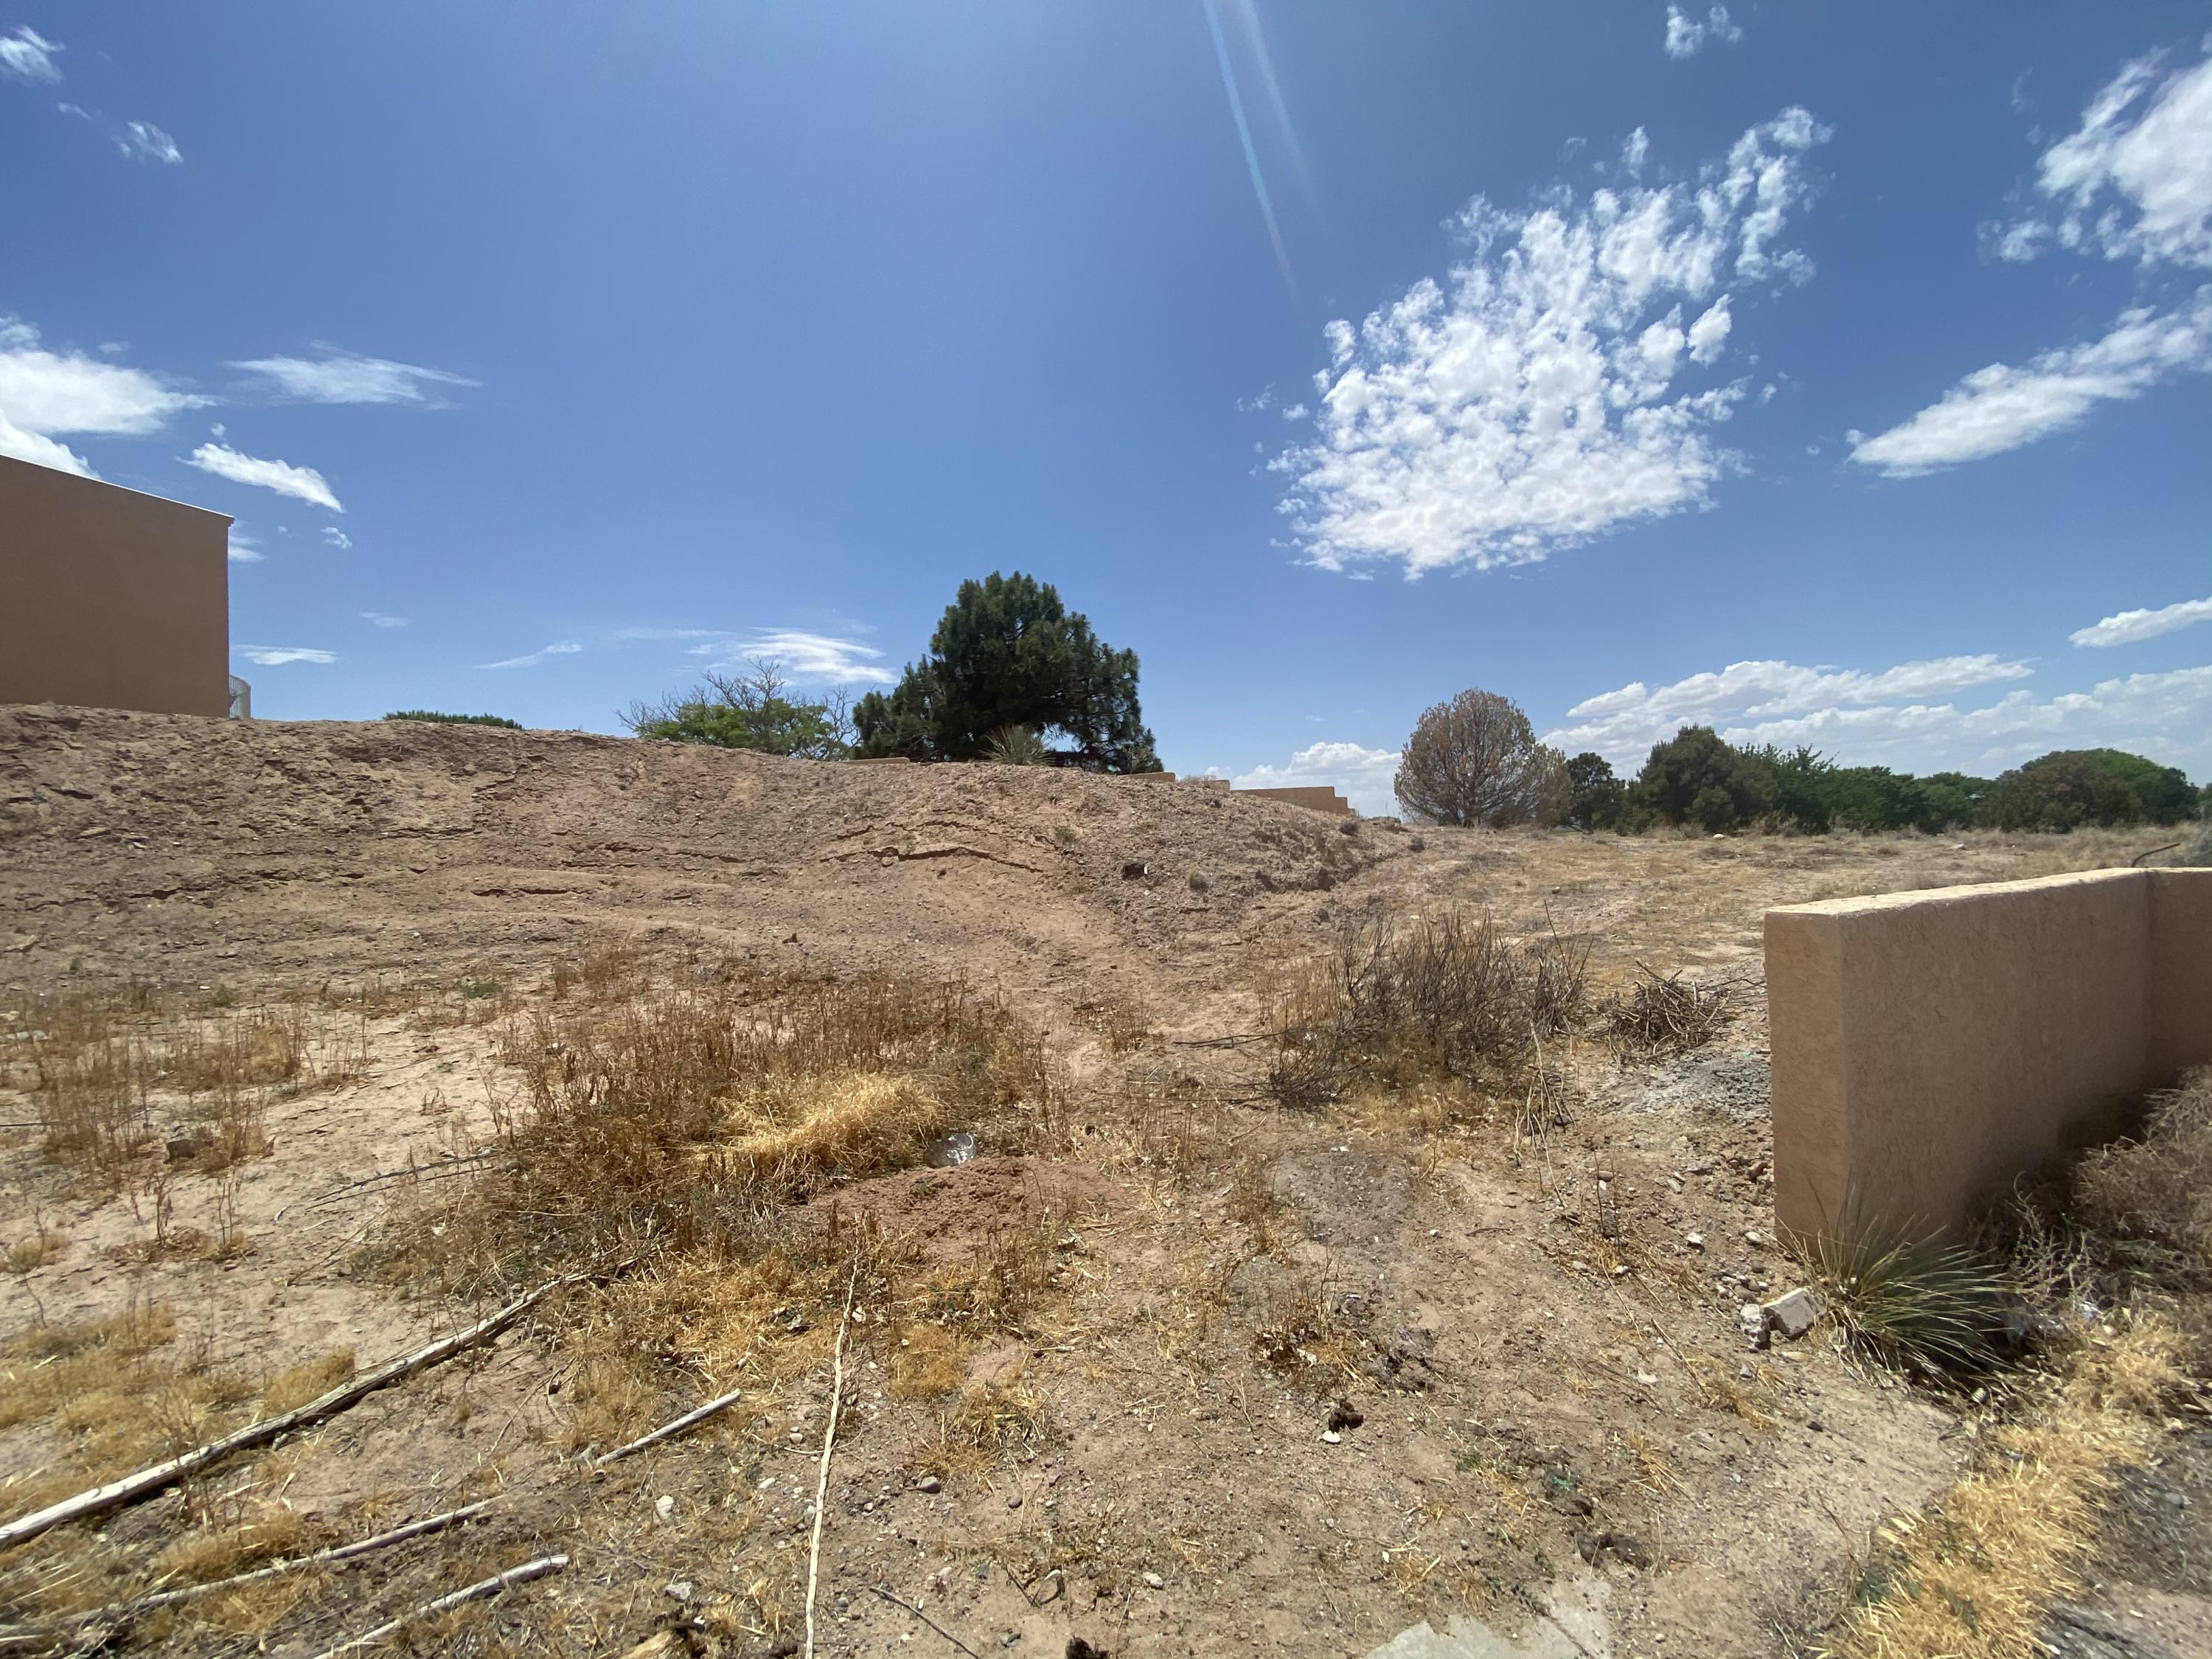 00 Carmel SE, Rio Communities, NM 87002 - Rio Communities, NM real estate listing